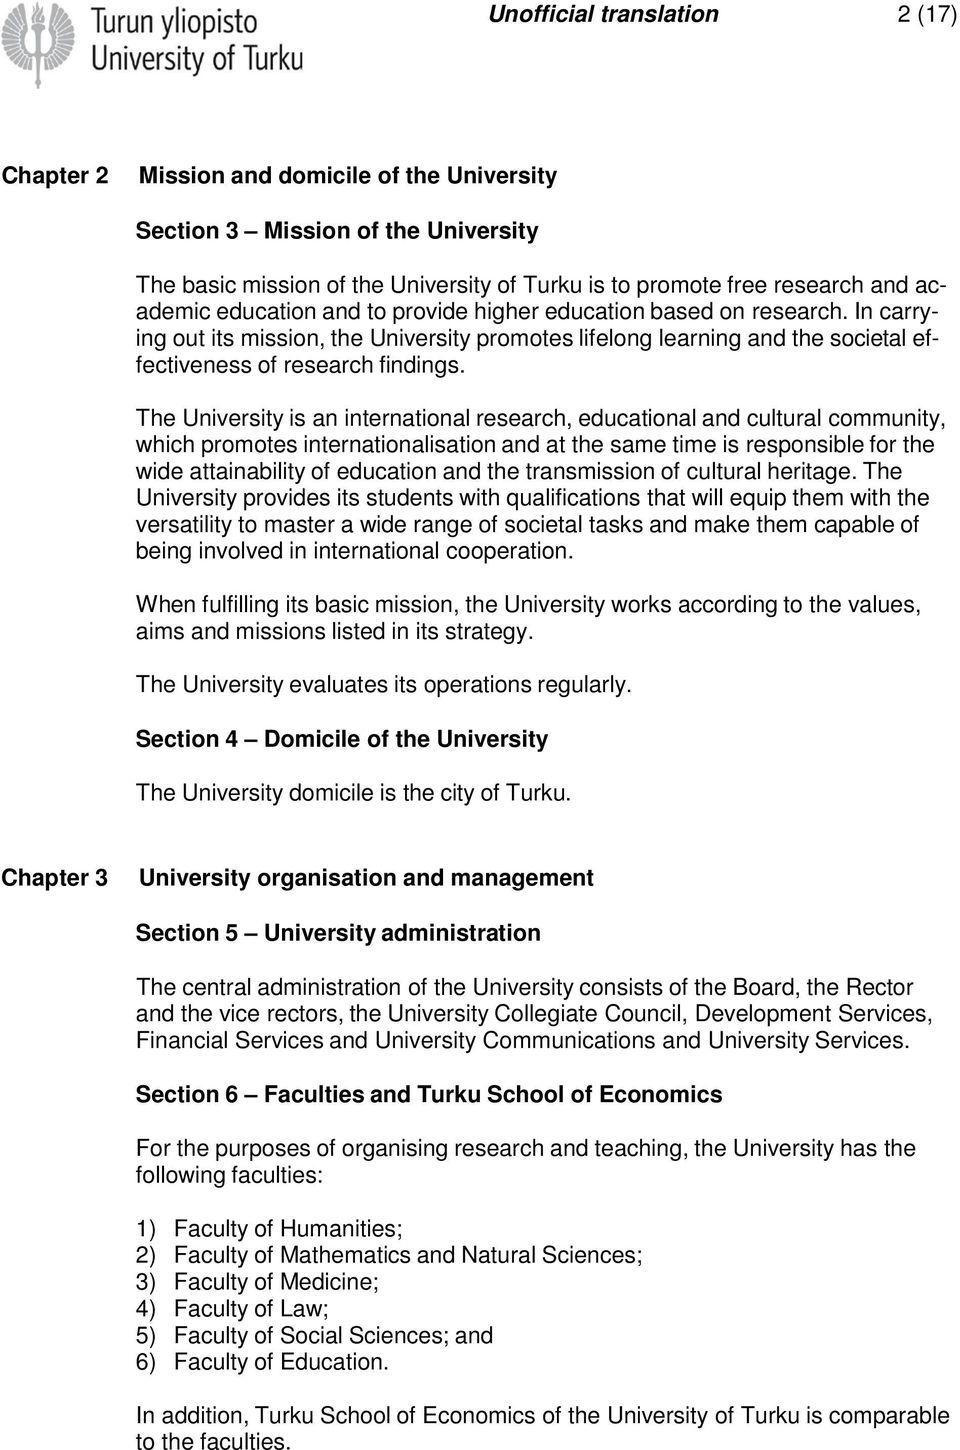 The University is an international research, educational and cultural community, which promotes internationalisation and at the same time is responsible for the wide attainability of education and